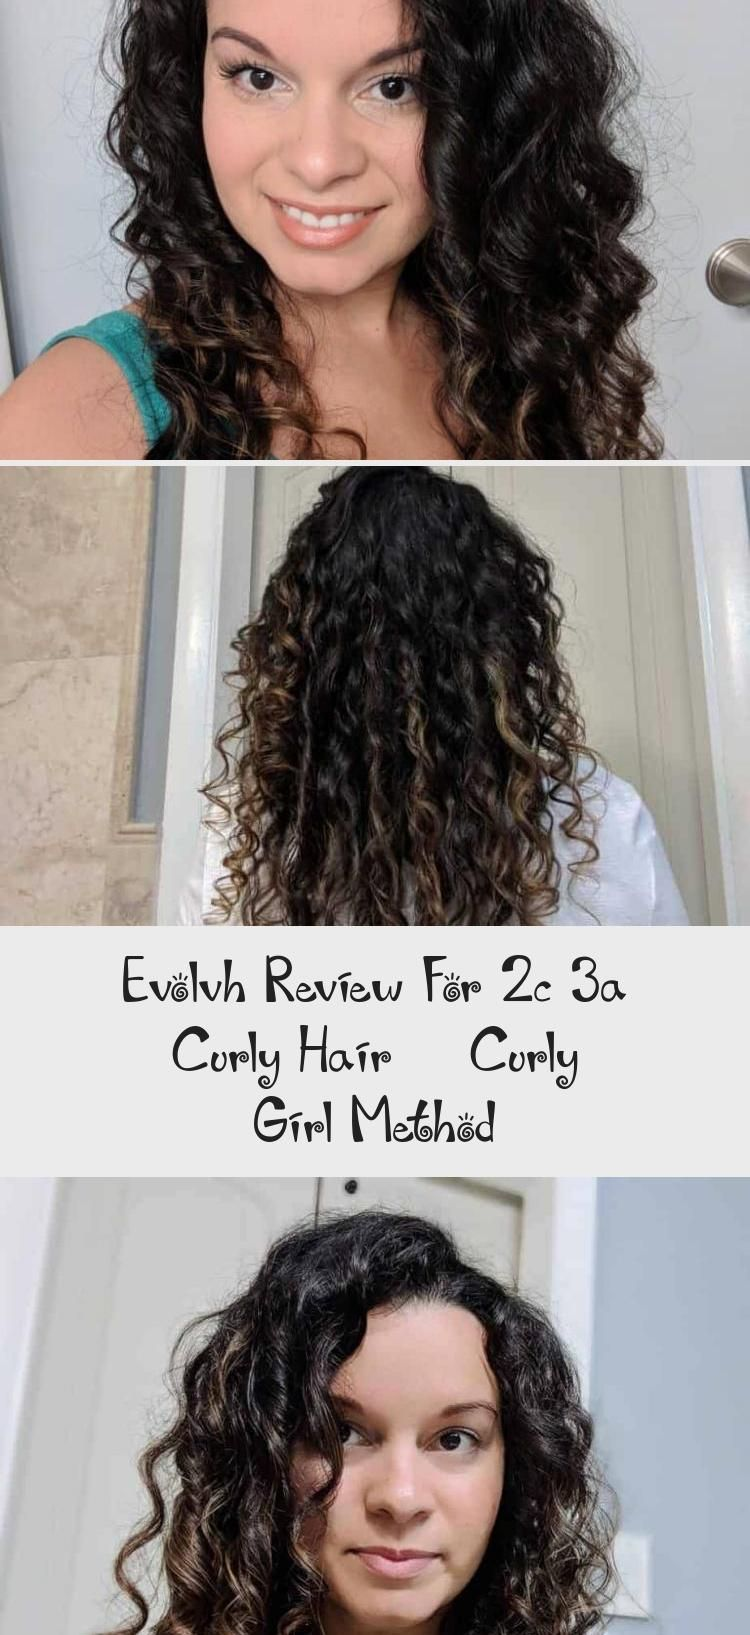 Evolvh Review For 2c 3a Curly Hair Curly Girl Method Curly